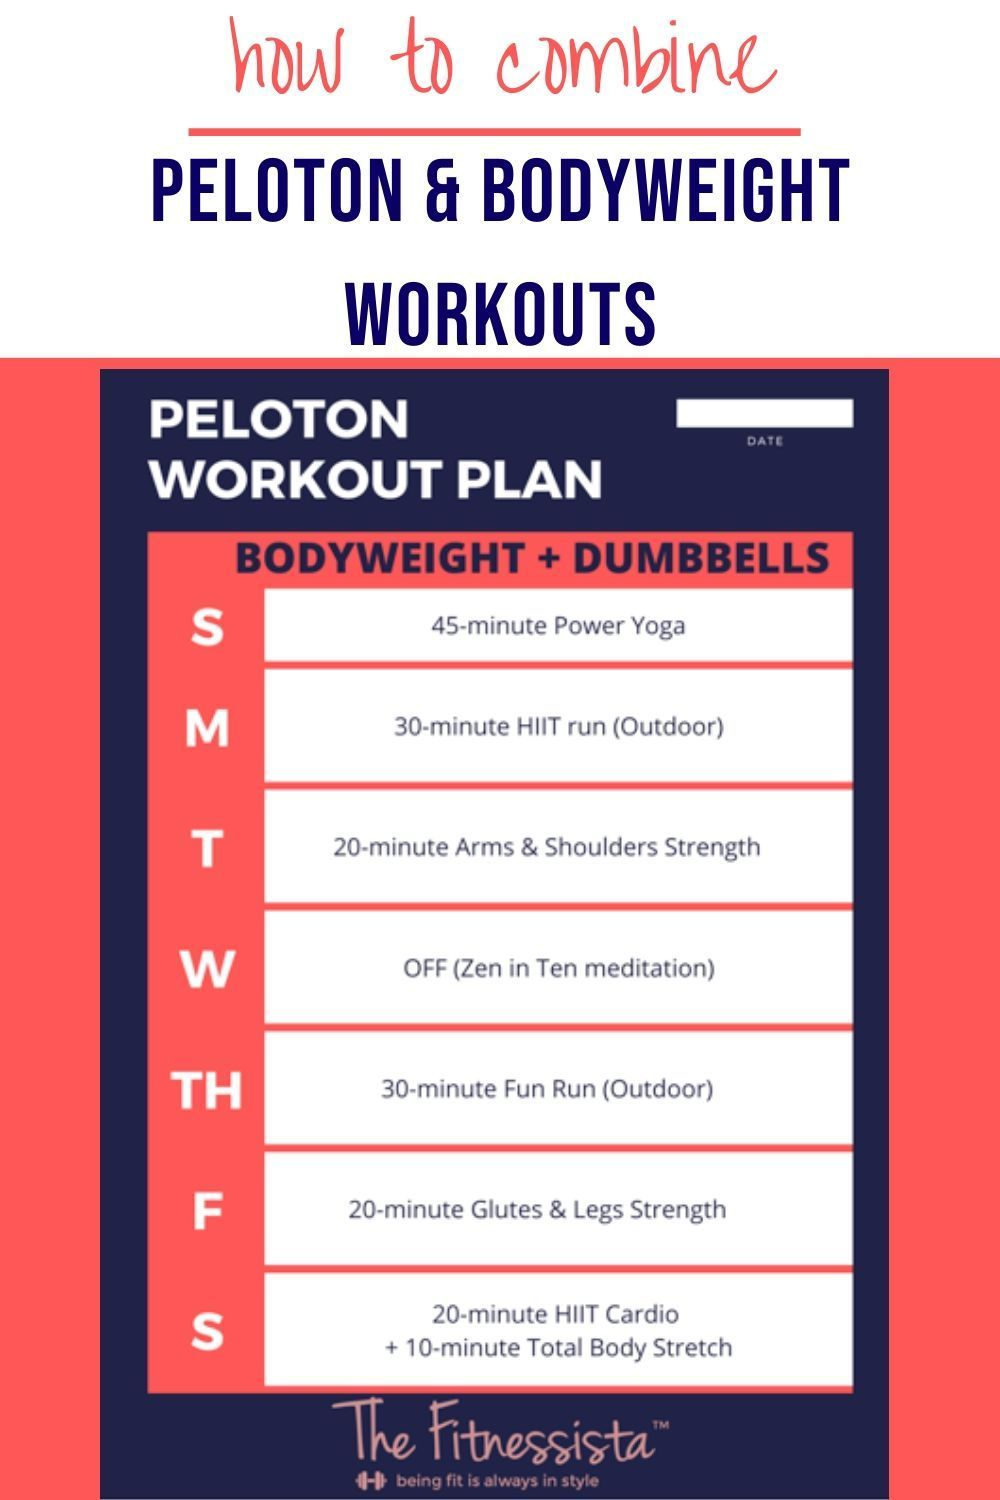 How to combine peloton workouts even if you dont have the